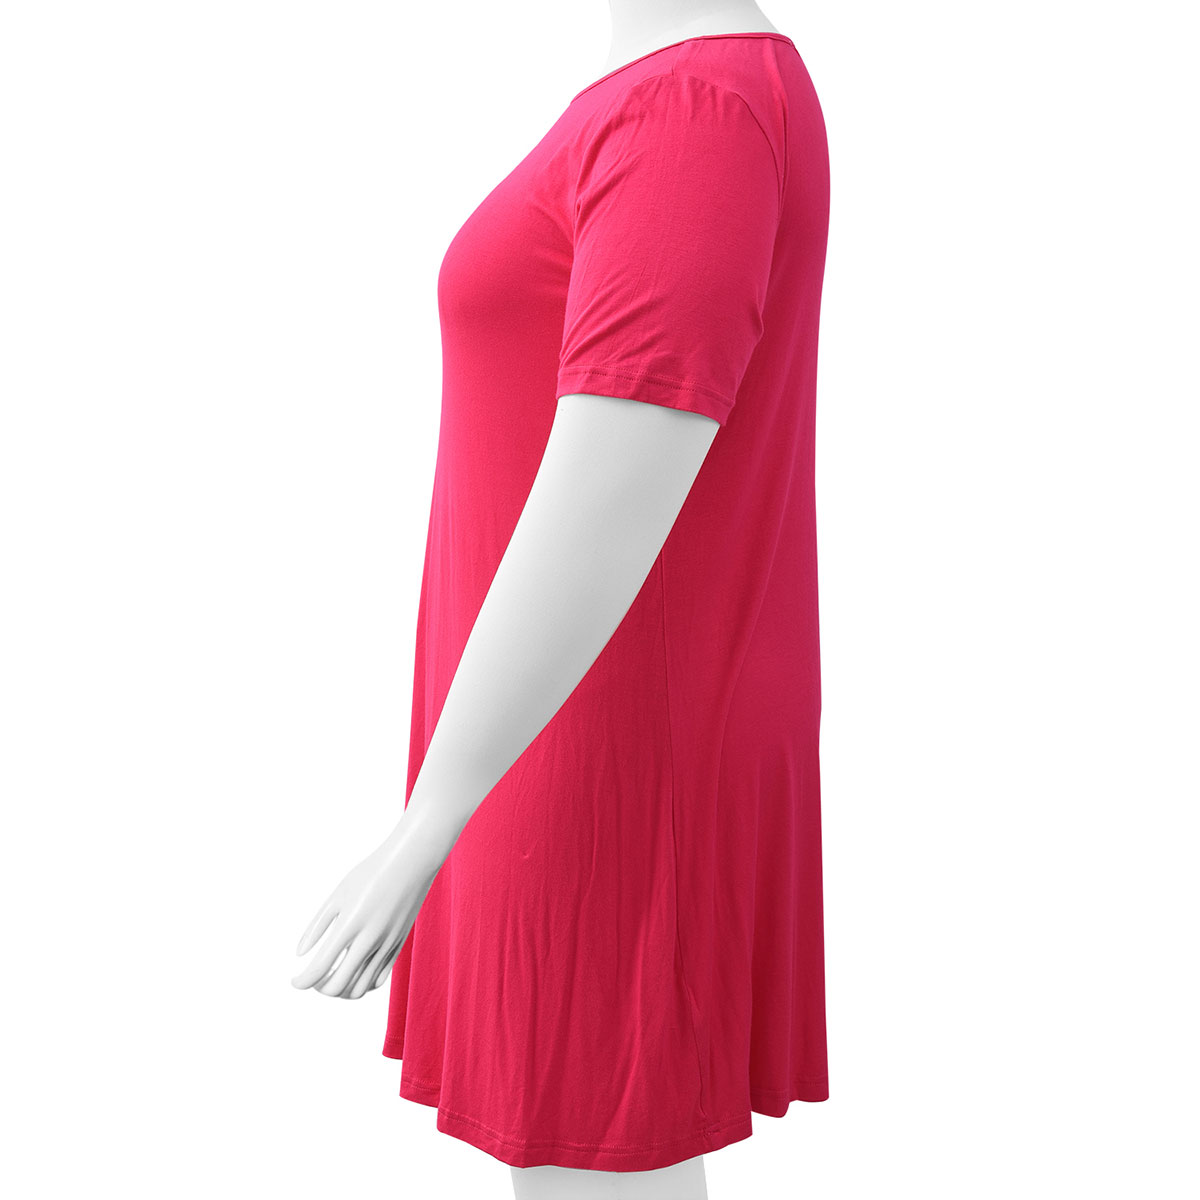 Rose Red East Knit Dress with 3/4 Sleeve - L (100% Viscose)